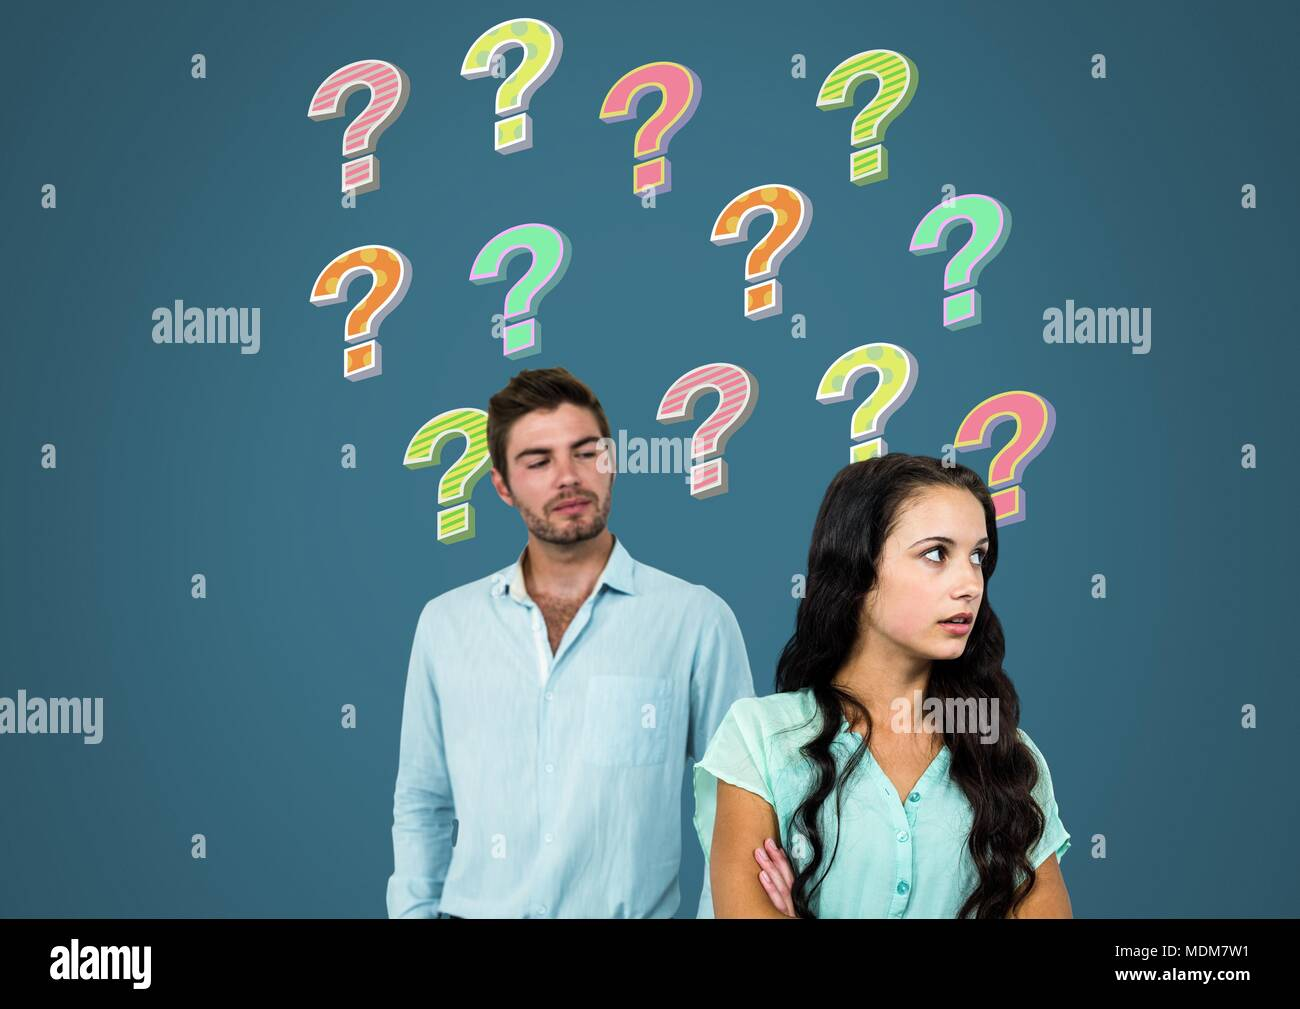 Confused unhappy couple with colorful funky question marks - Stock Image